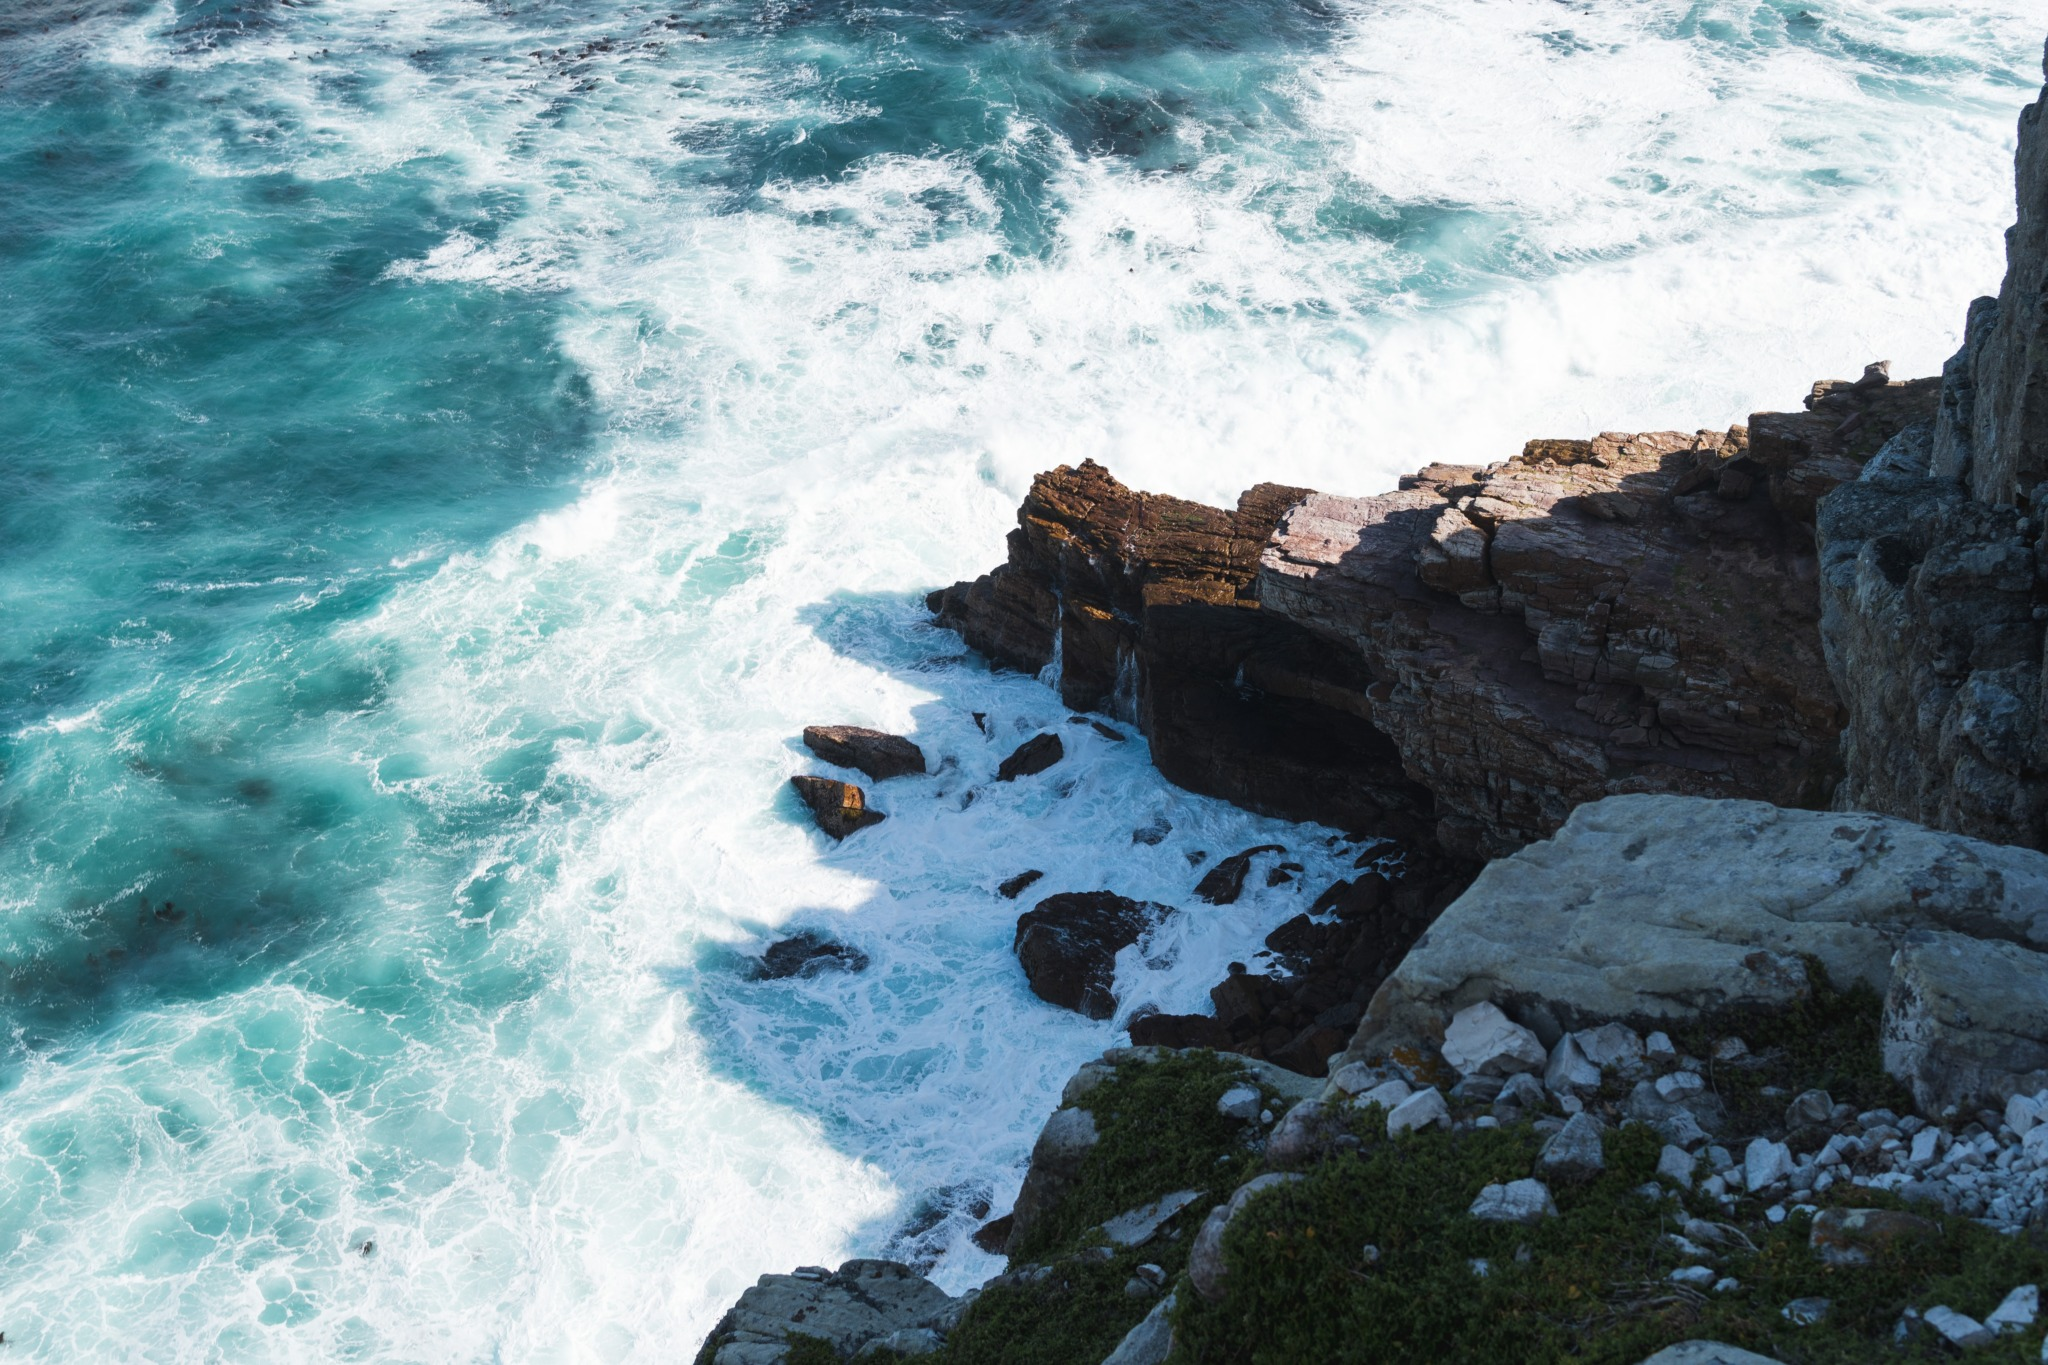 photo overlooking the Cape of Good Hope in South Africa with the ocean water crashing against the jagged rocks.